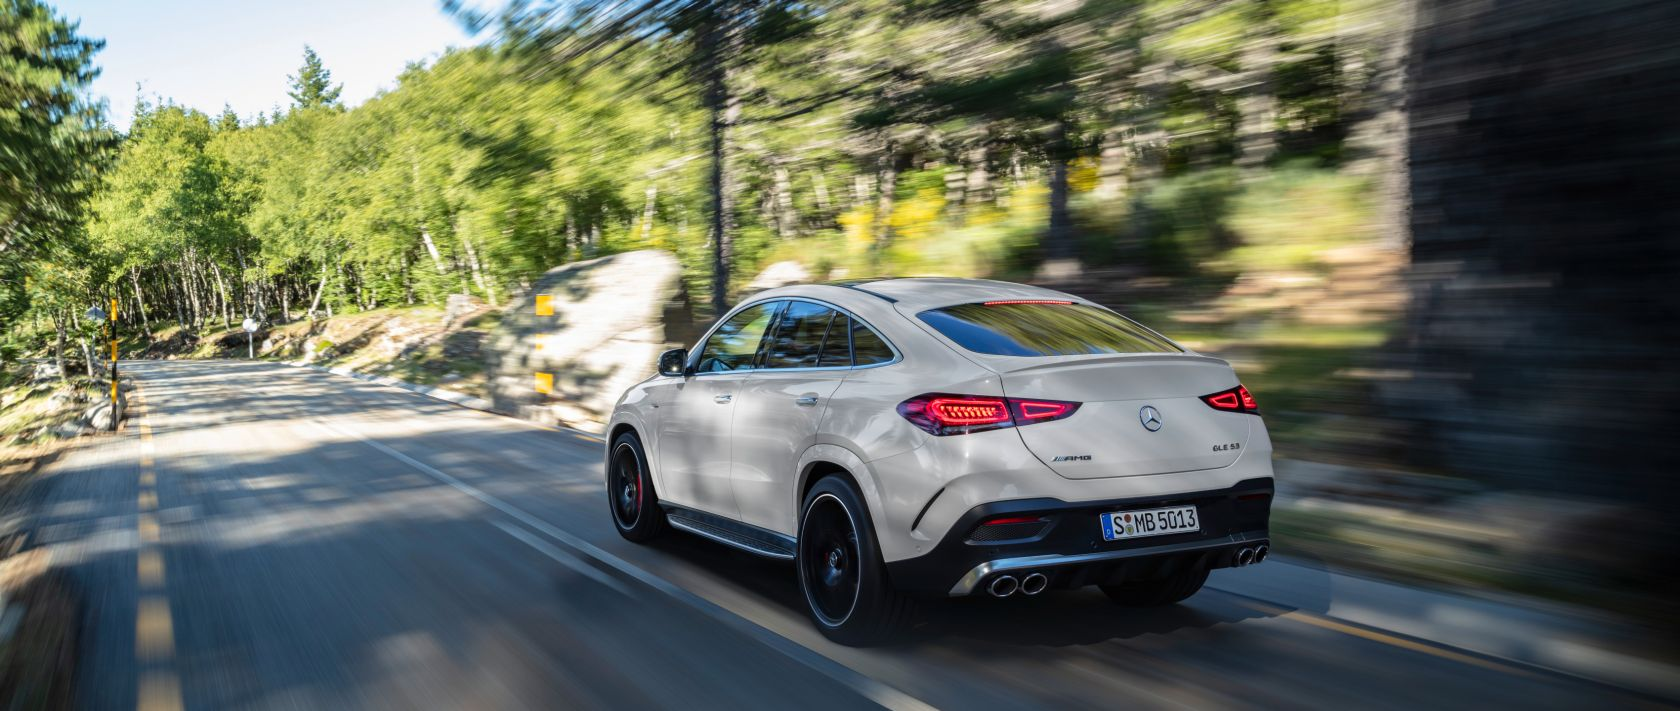 Rear view: The new 2020er Mercedes-AMG GLE 53 4MATIC+ Coupé (C 167) in designo diamond white bright on a country road.